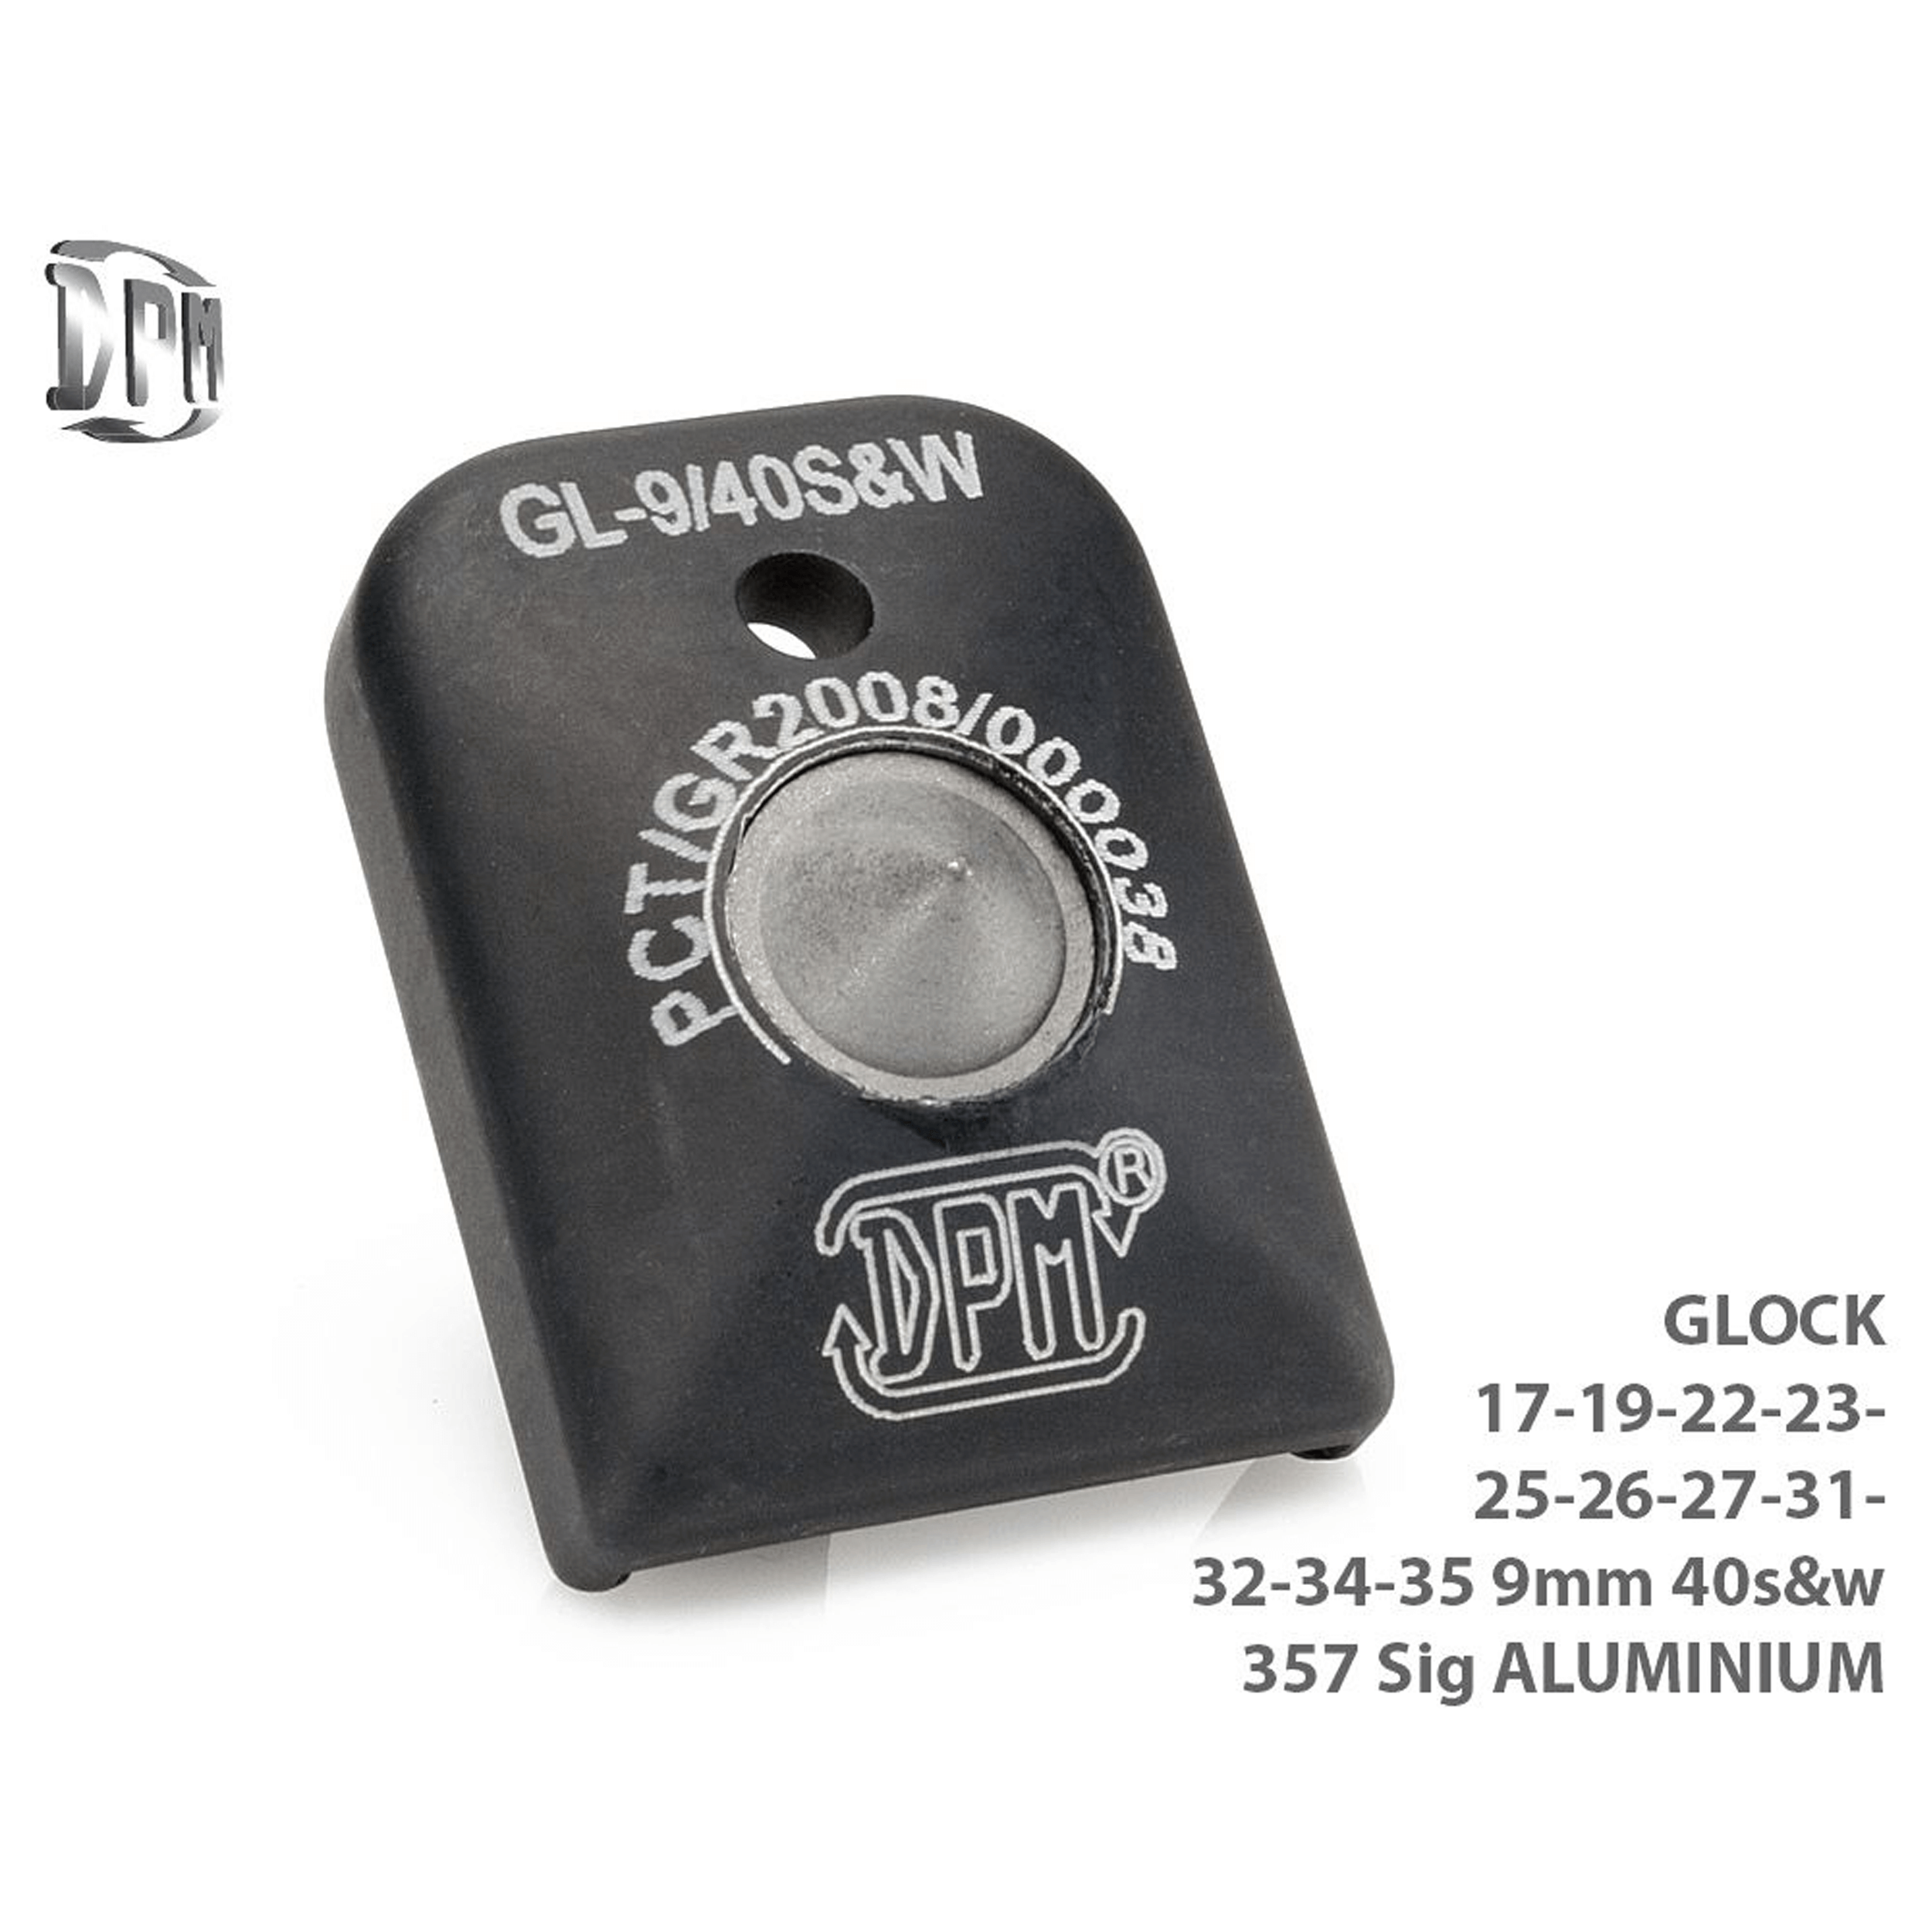 Glock 17 / 19 Aluminum Magazine Floorplate - Glass Breaker